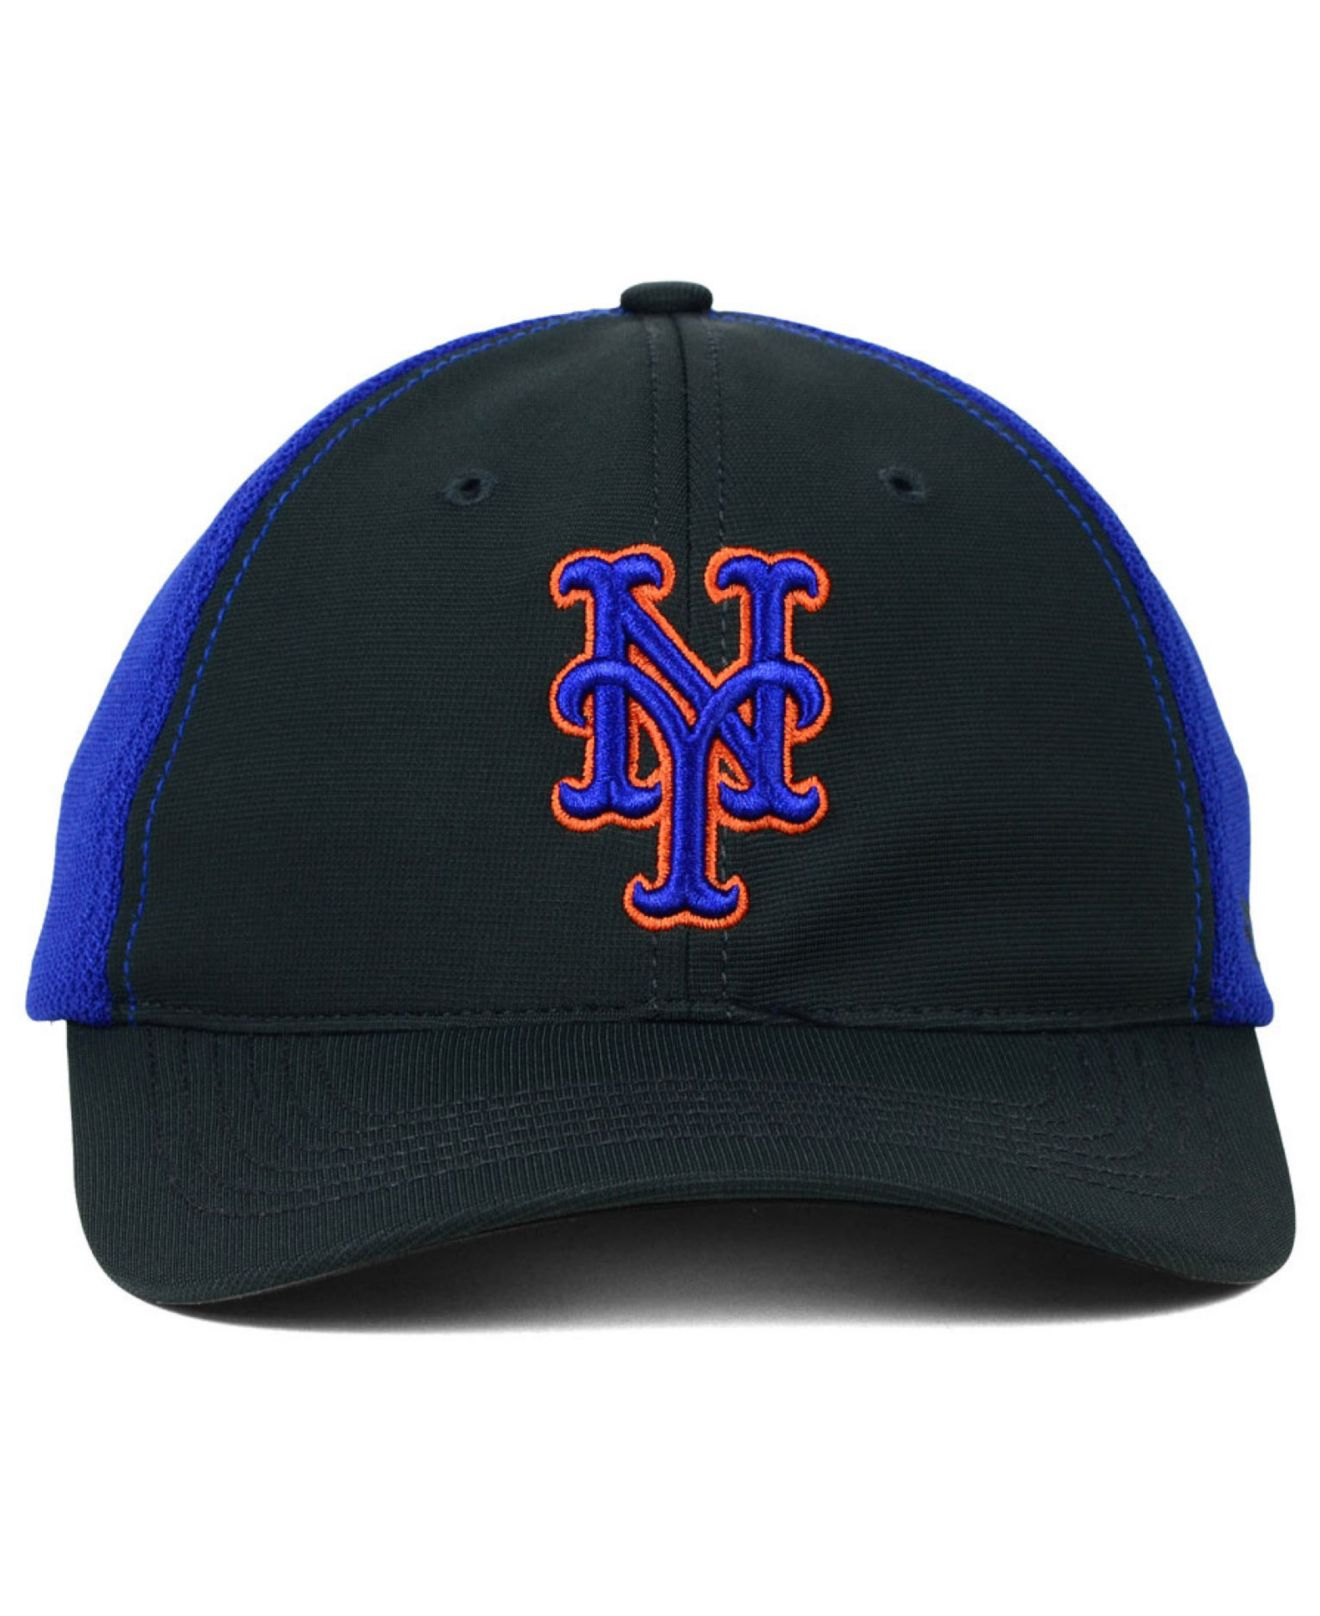 88f87e3f992 Lyst - 47 Brand New York Mets Stretch-Fit Cap in Blue for Men